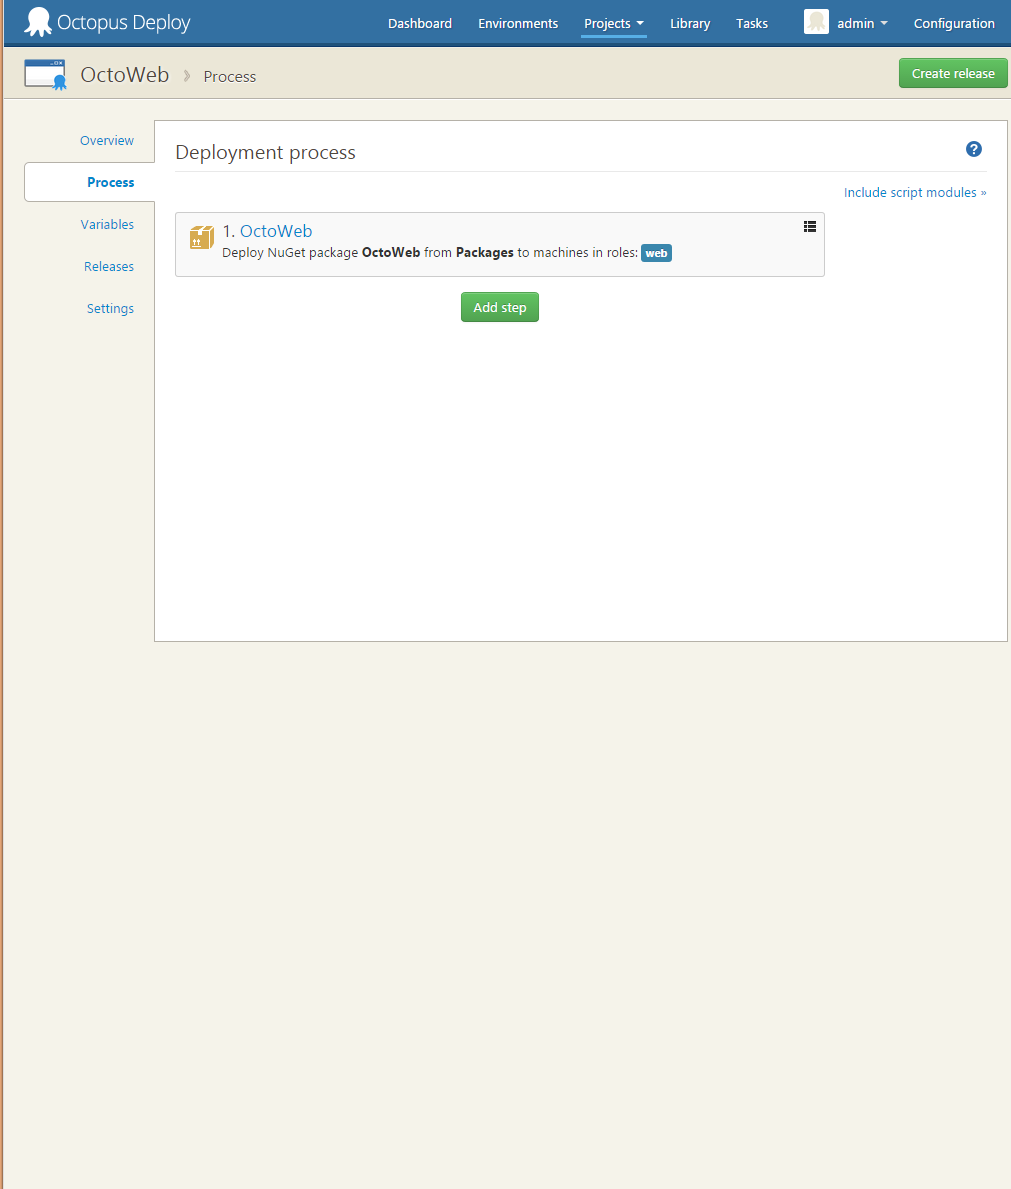 Project deployment process with 1 step